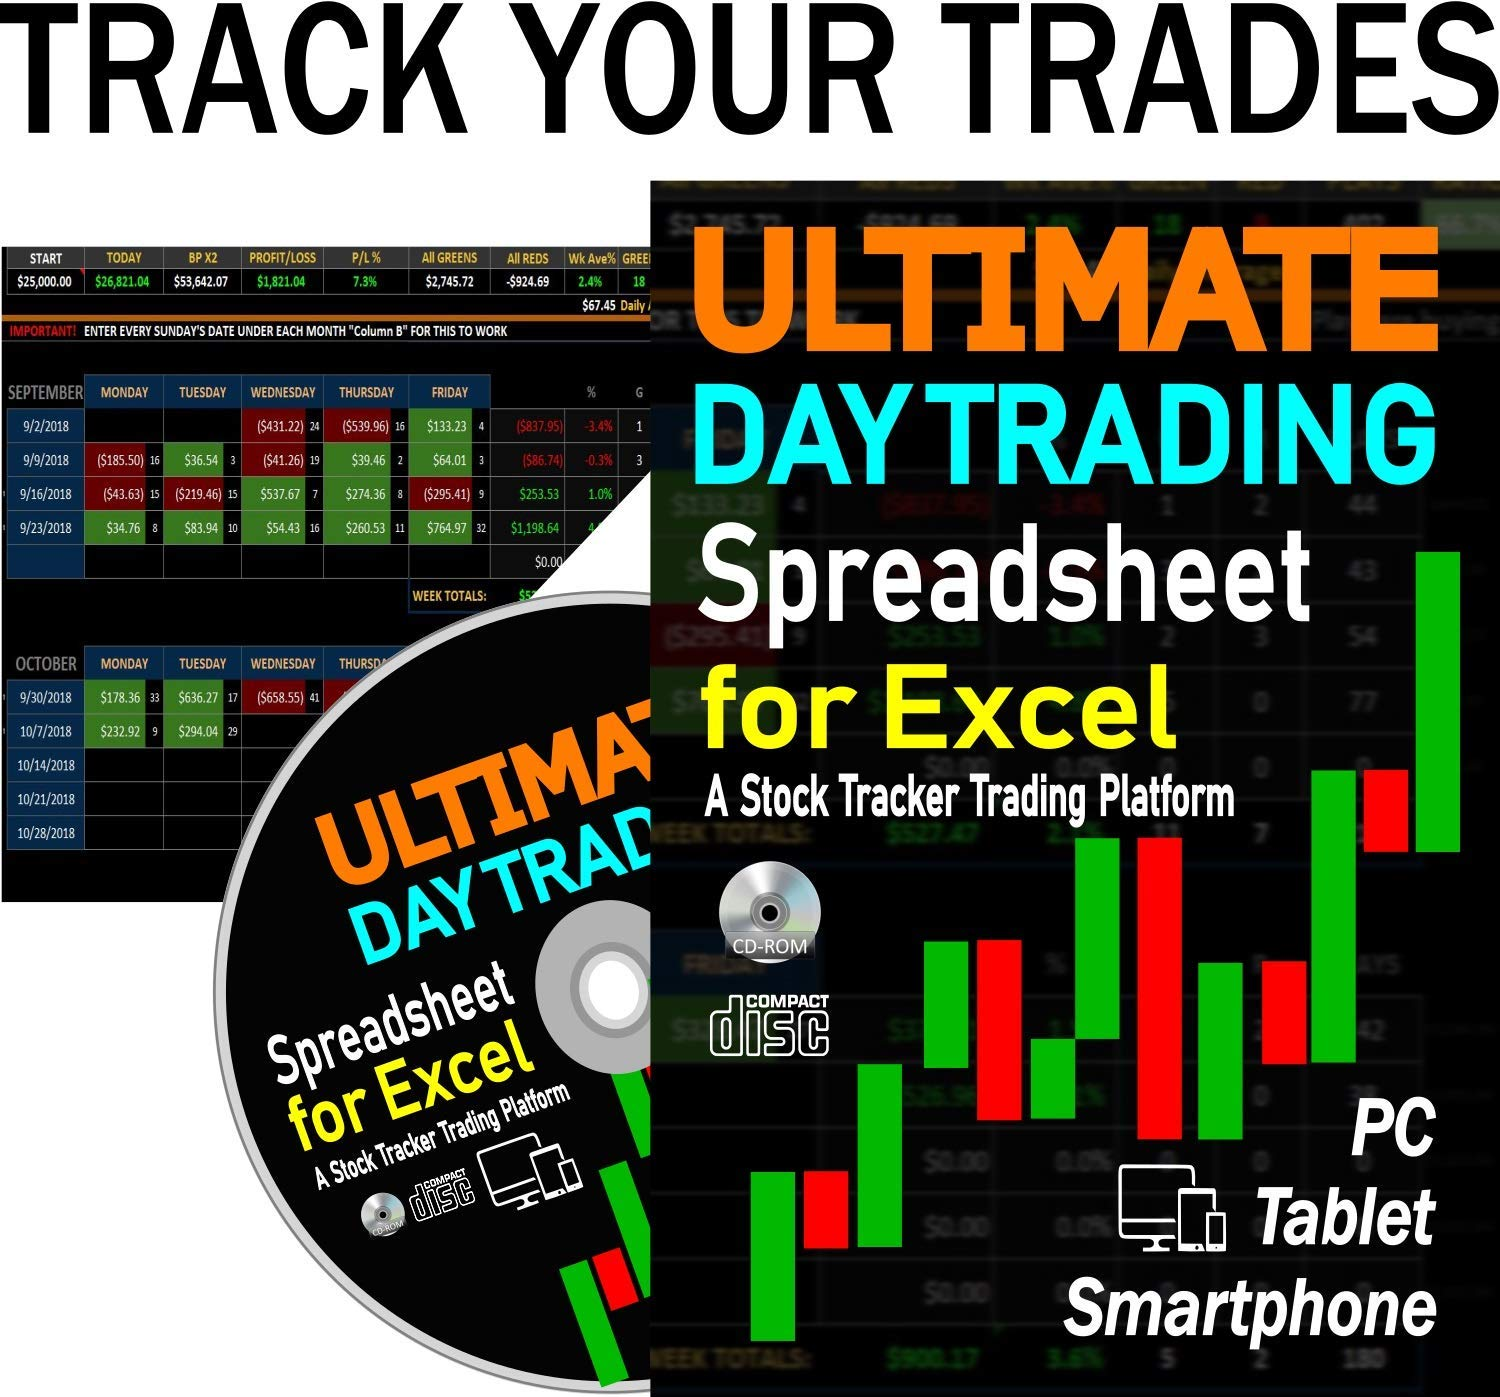 ULTIMATE Day Trading Spreadsheet for Excel. A Stock Trading Tracker Platform That Helps You Analyze Your Trades, View Performance and Improve by FirePrices